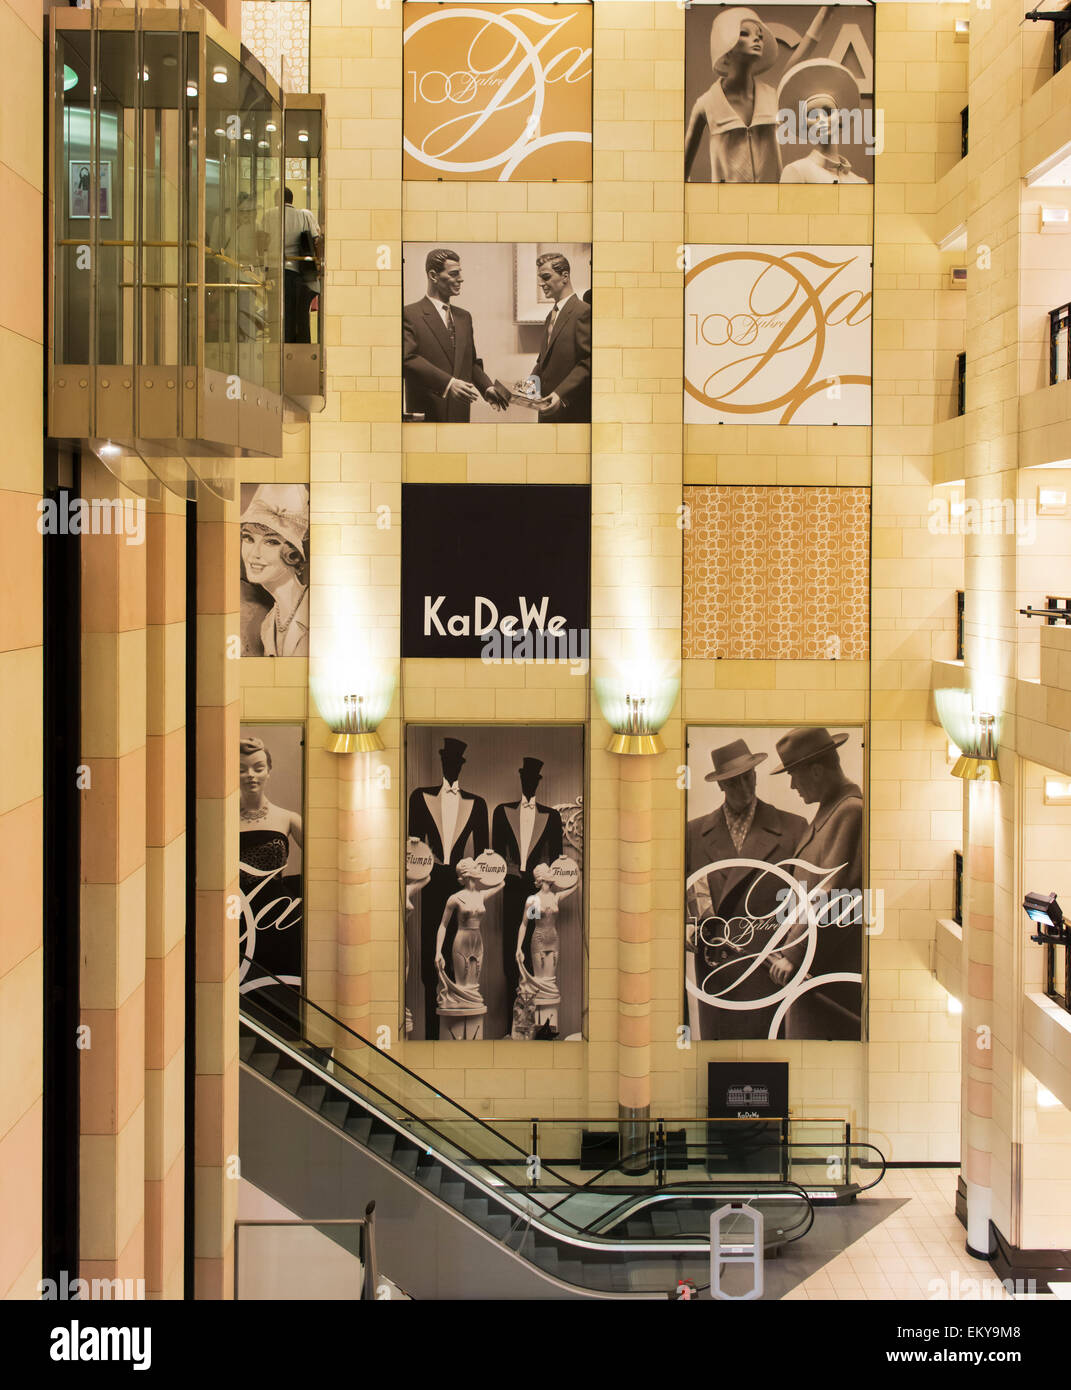 Elevators, escalators and displays at KaDeWe, a historic and upmarket department store, with views over Berlin. - Stock Image